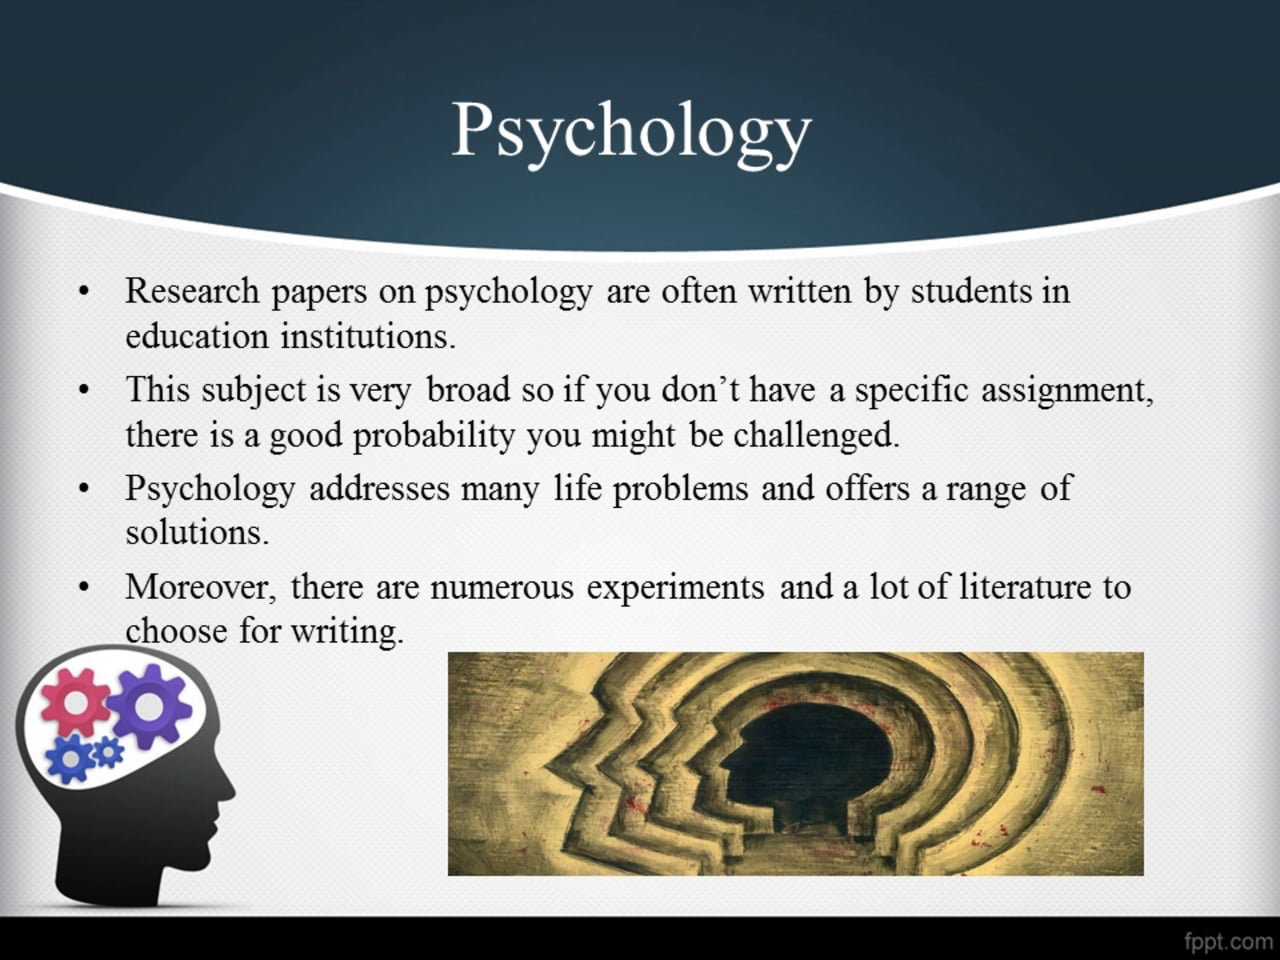 007 Research Paper 534384154 1280x960 Psychology Topics For High School Frightening Students Full